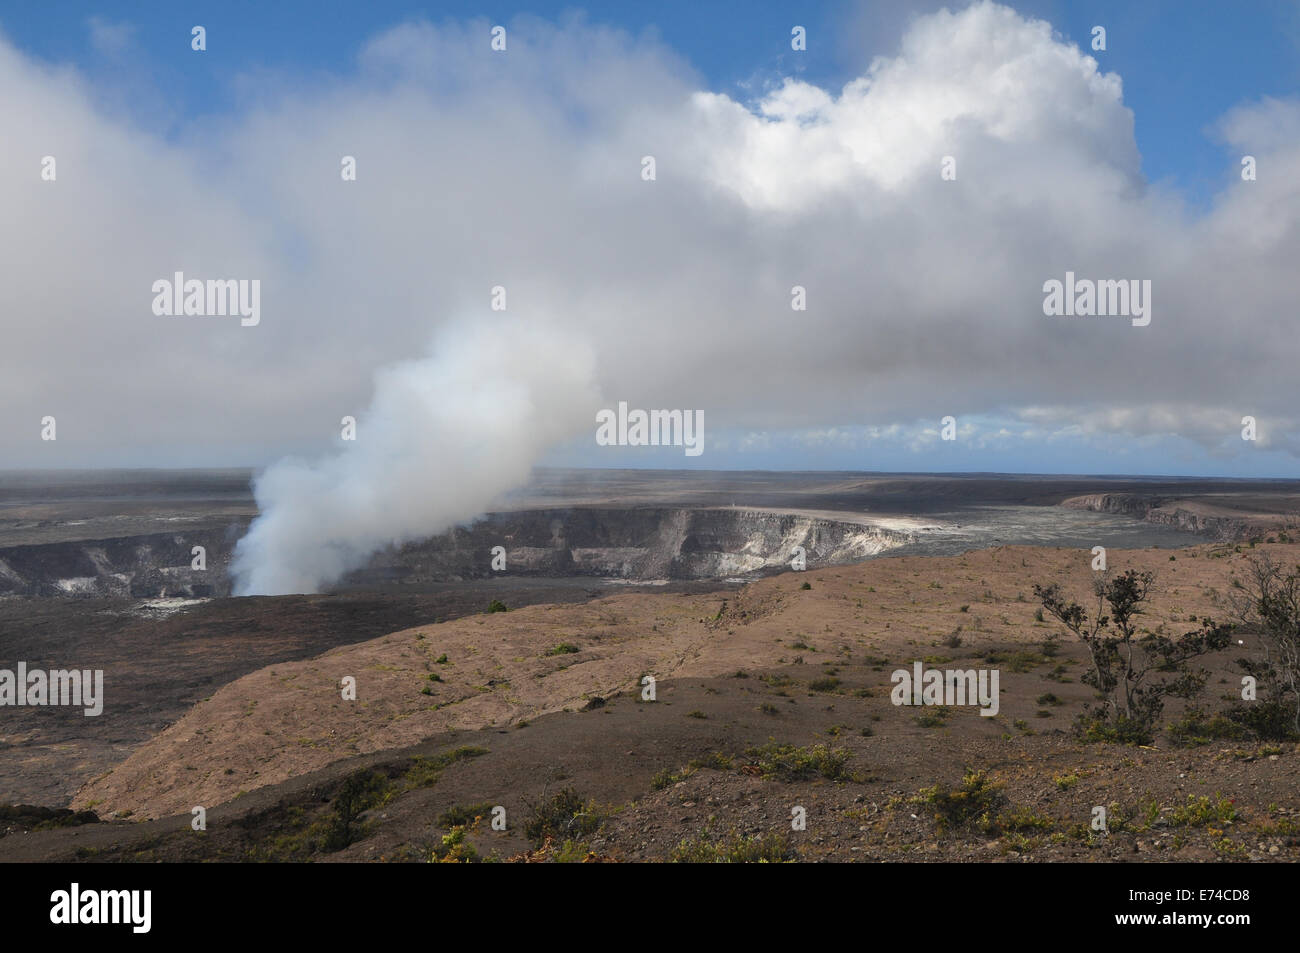 One of Kilauea's vents at work. - Stock Image